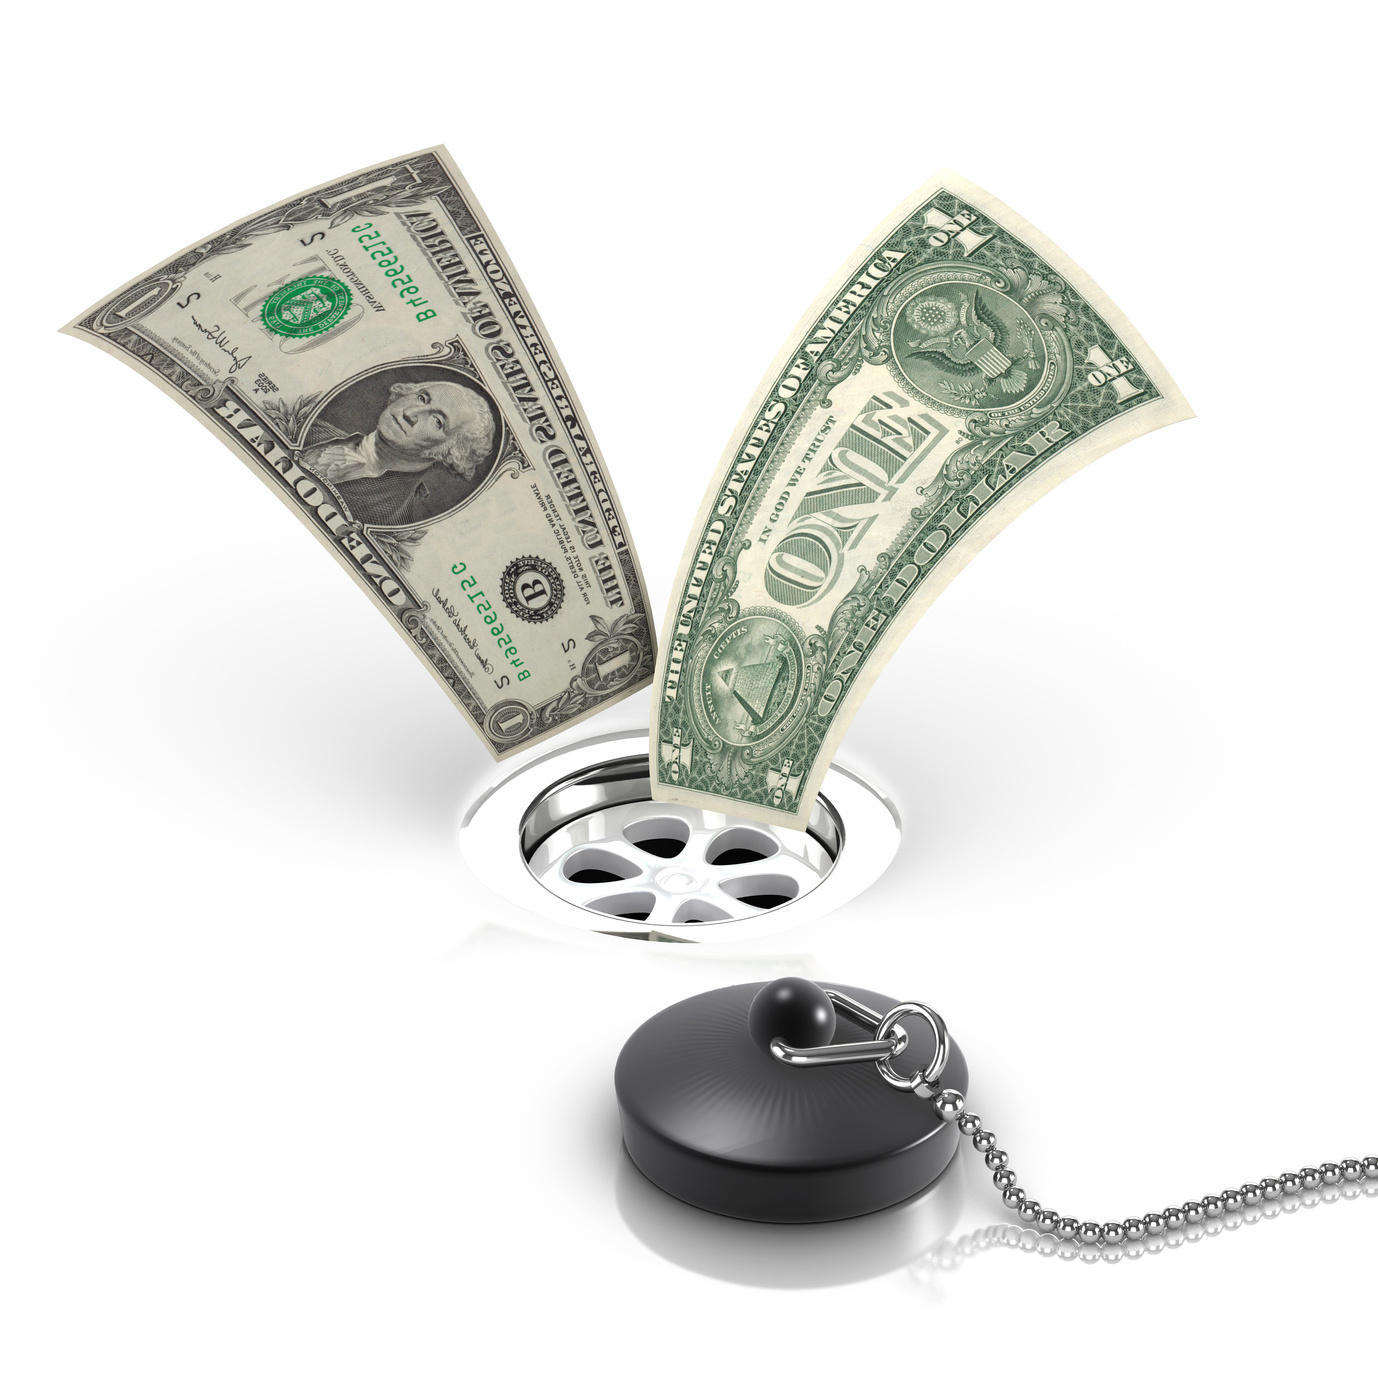 Leaks and other issues can lead to high water bills that flush your money down the drain.